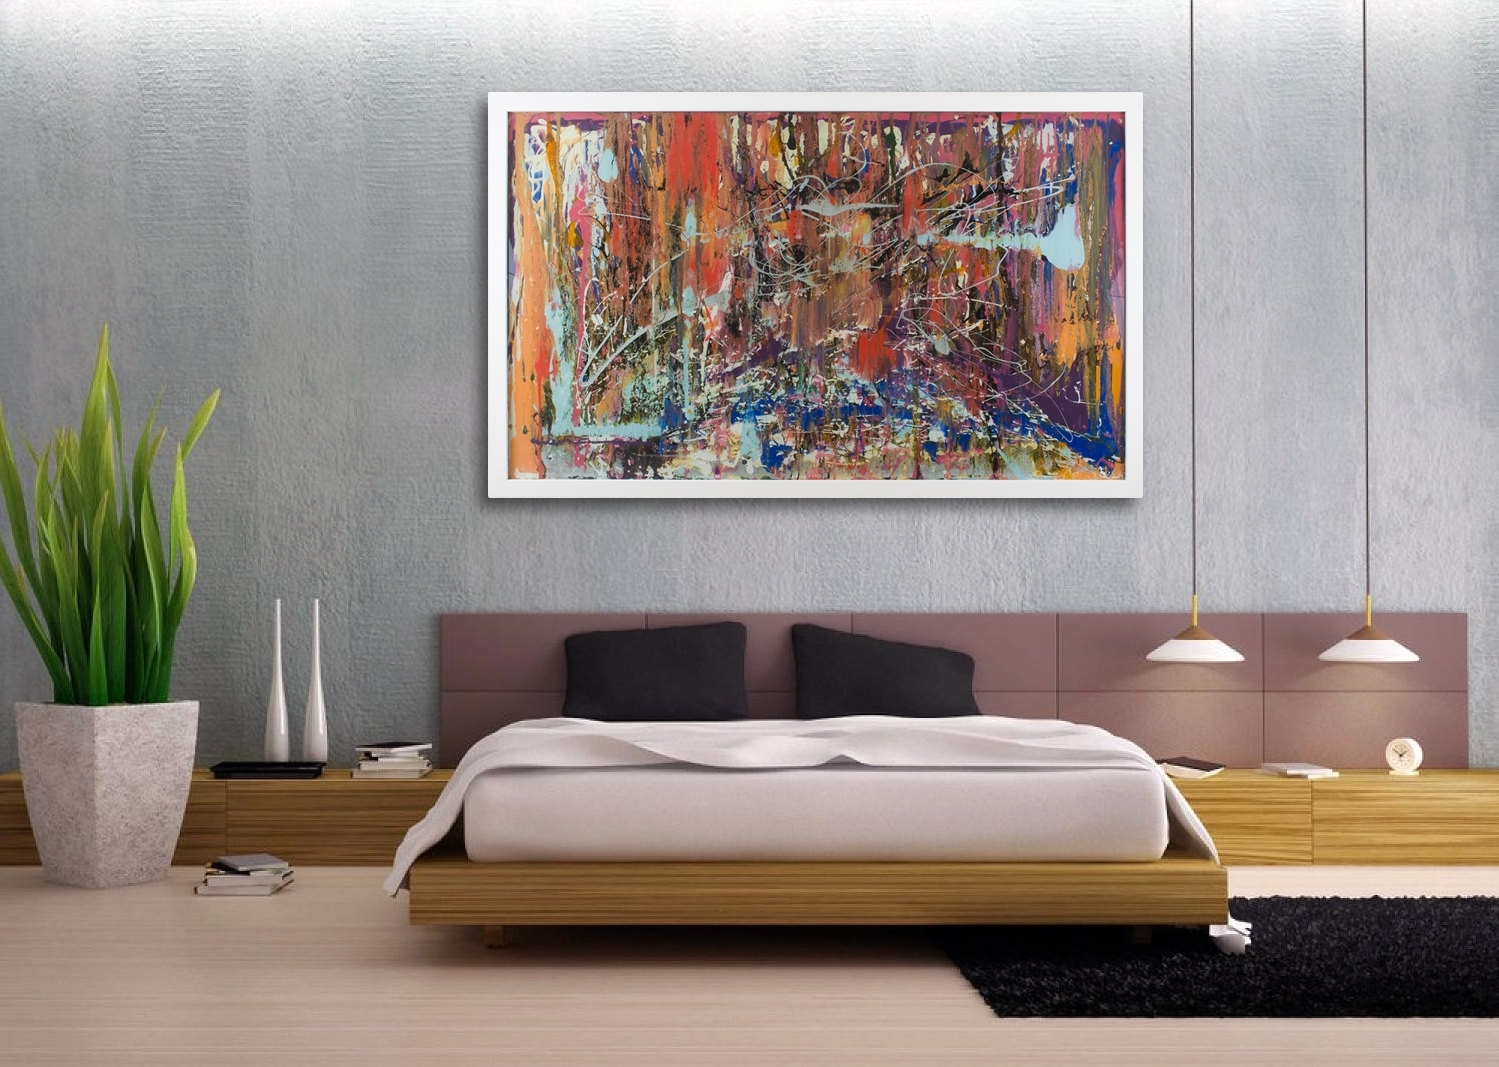 Expensive Large Canvas Wall Art Bedroom — Joanne Russo Homesjoanne Throughout Most Up To Date Etsy Wall Accents (View 5 of 15)